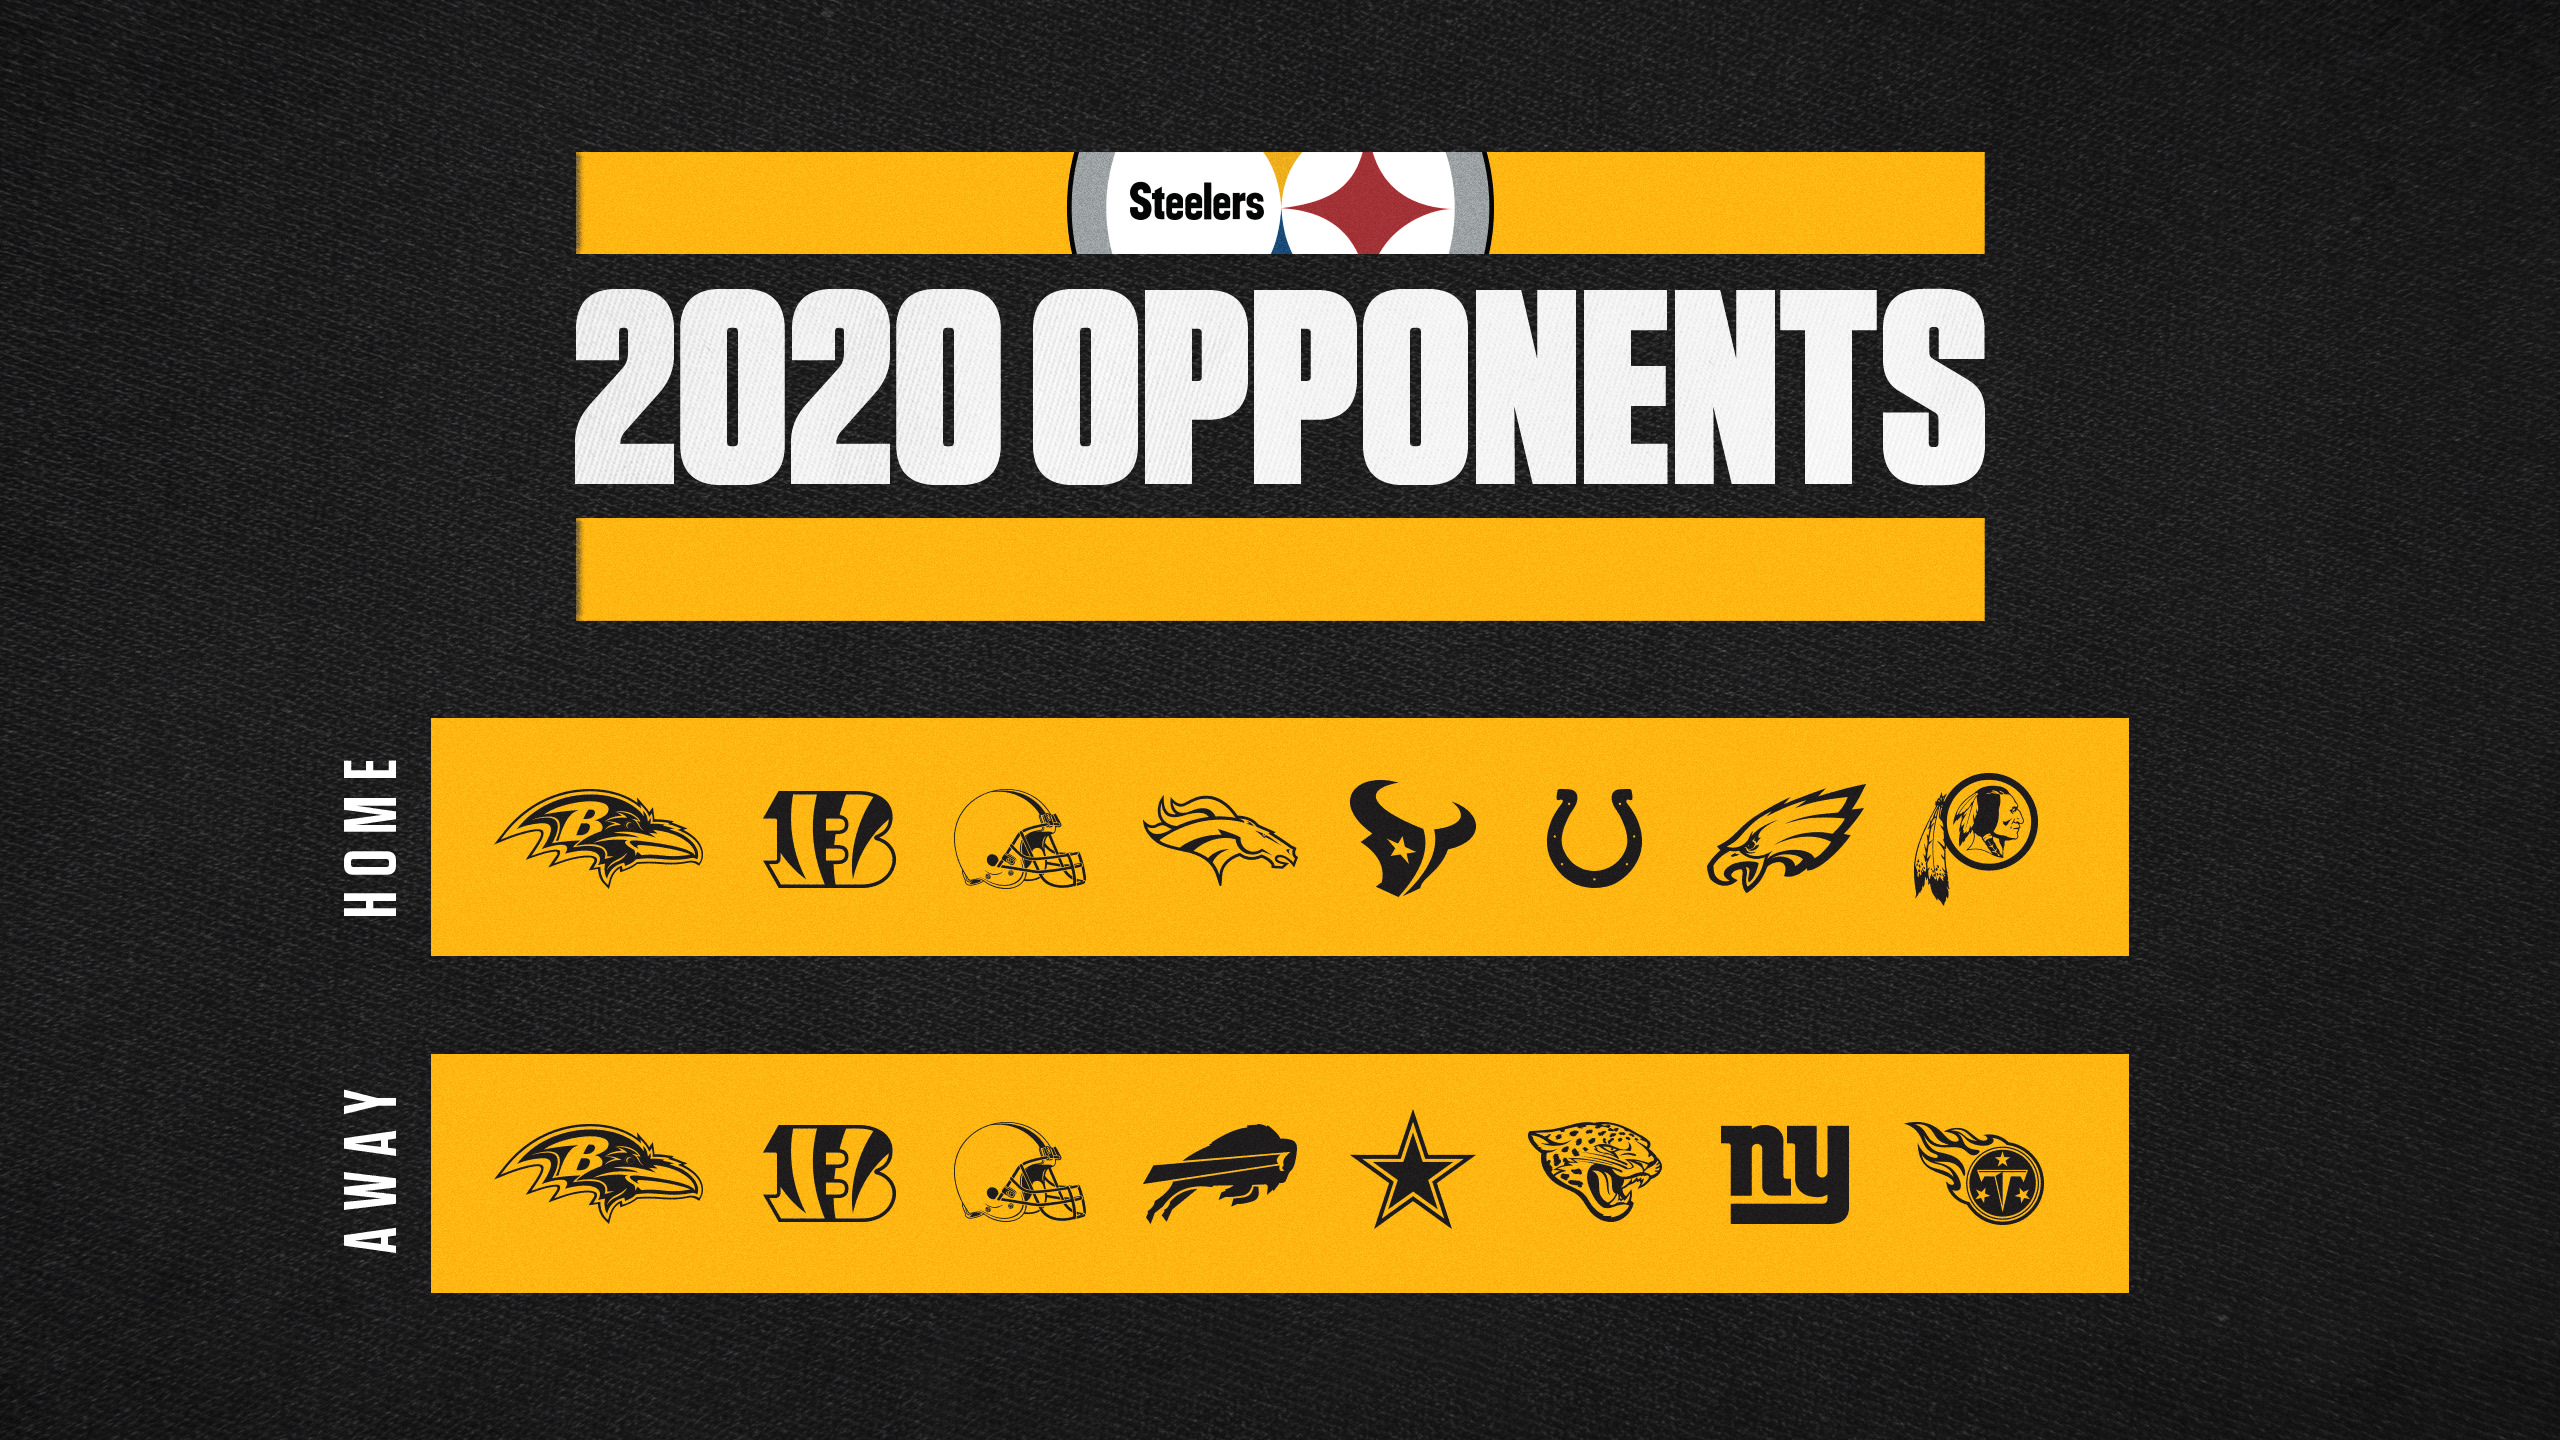 2020 Opponents